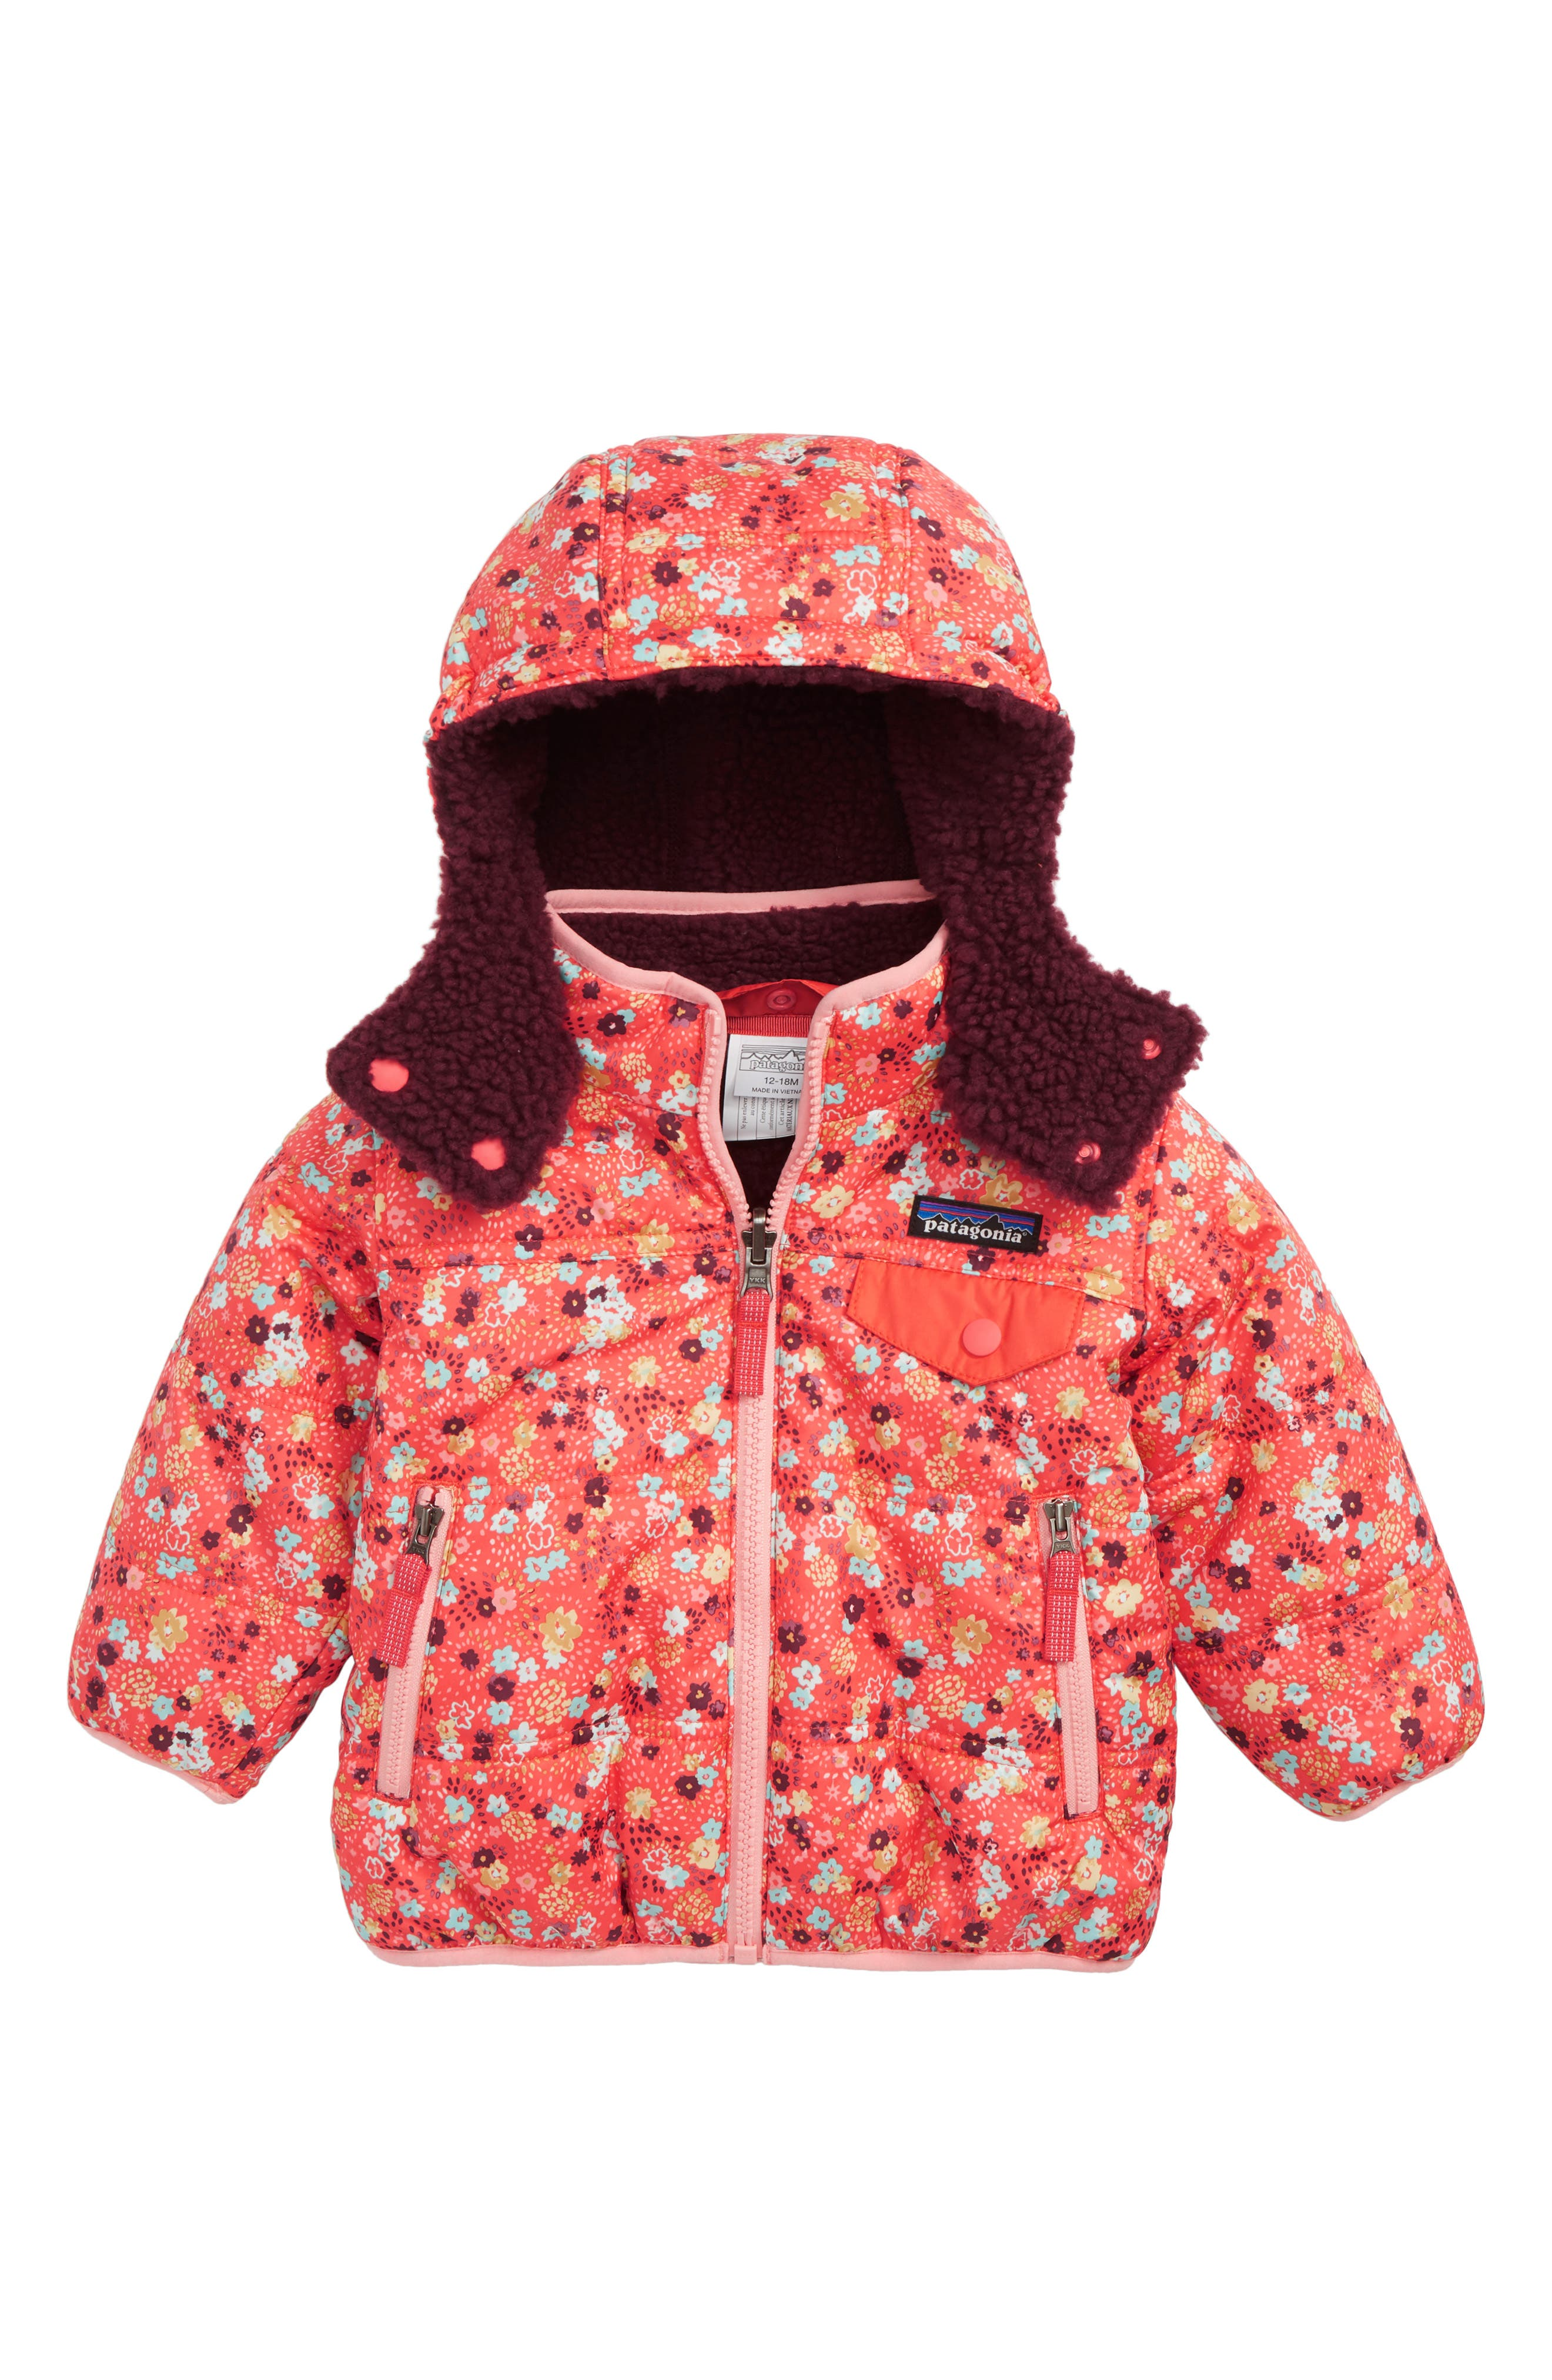 PATAGONIA, Tribbles Reversible Water Resistant Snow Jacket, Main thumbnail 1, color, UDSC UNTAMED DITSY SPICE CORAL